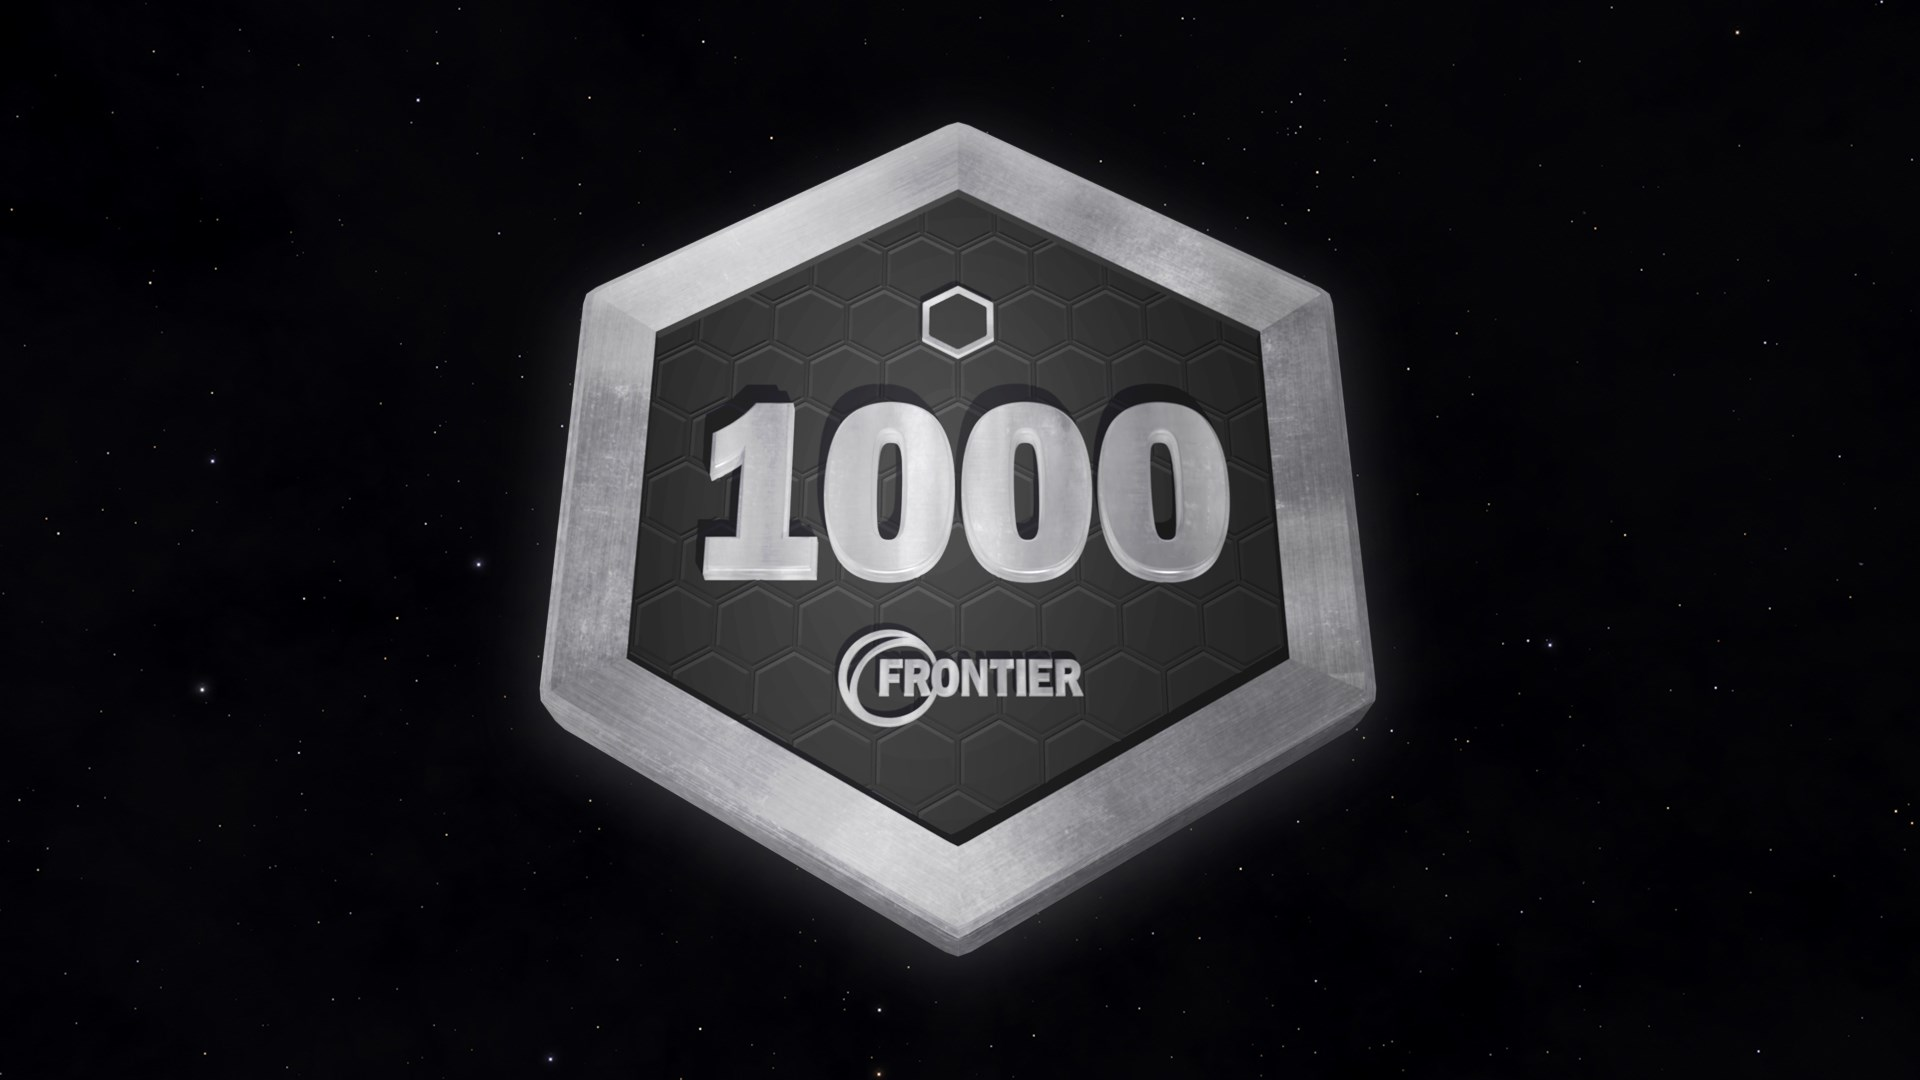 Buy Frontier Points 1000 - Microsoft Store